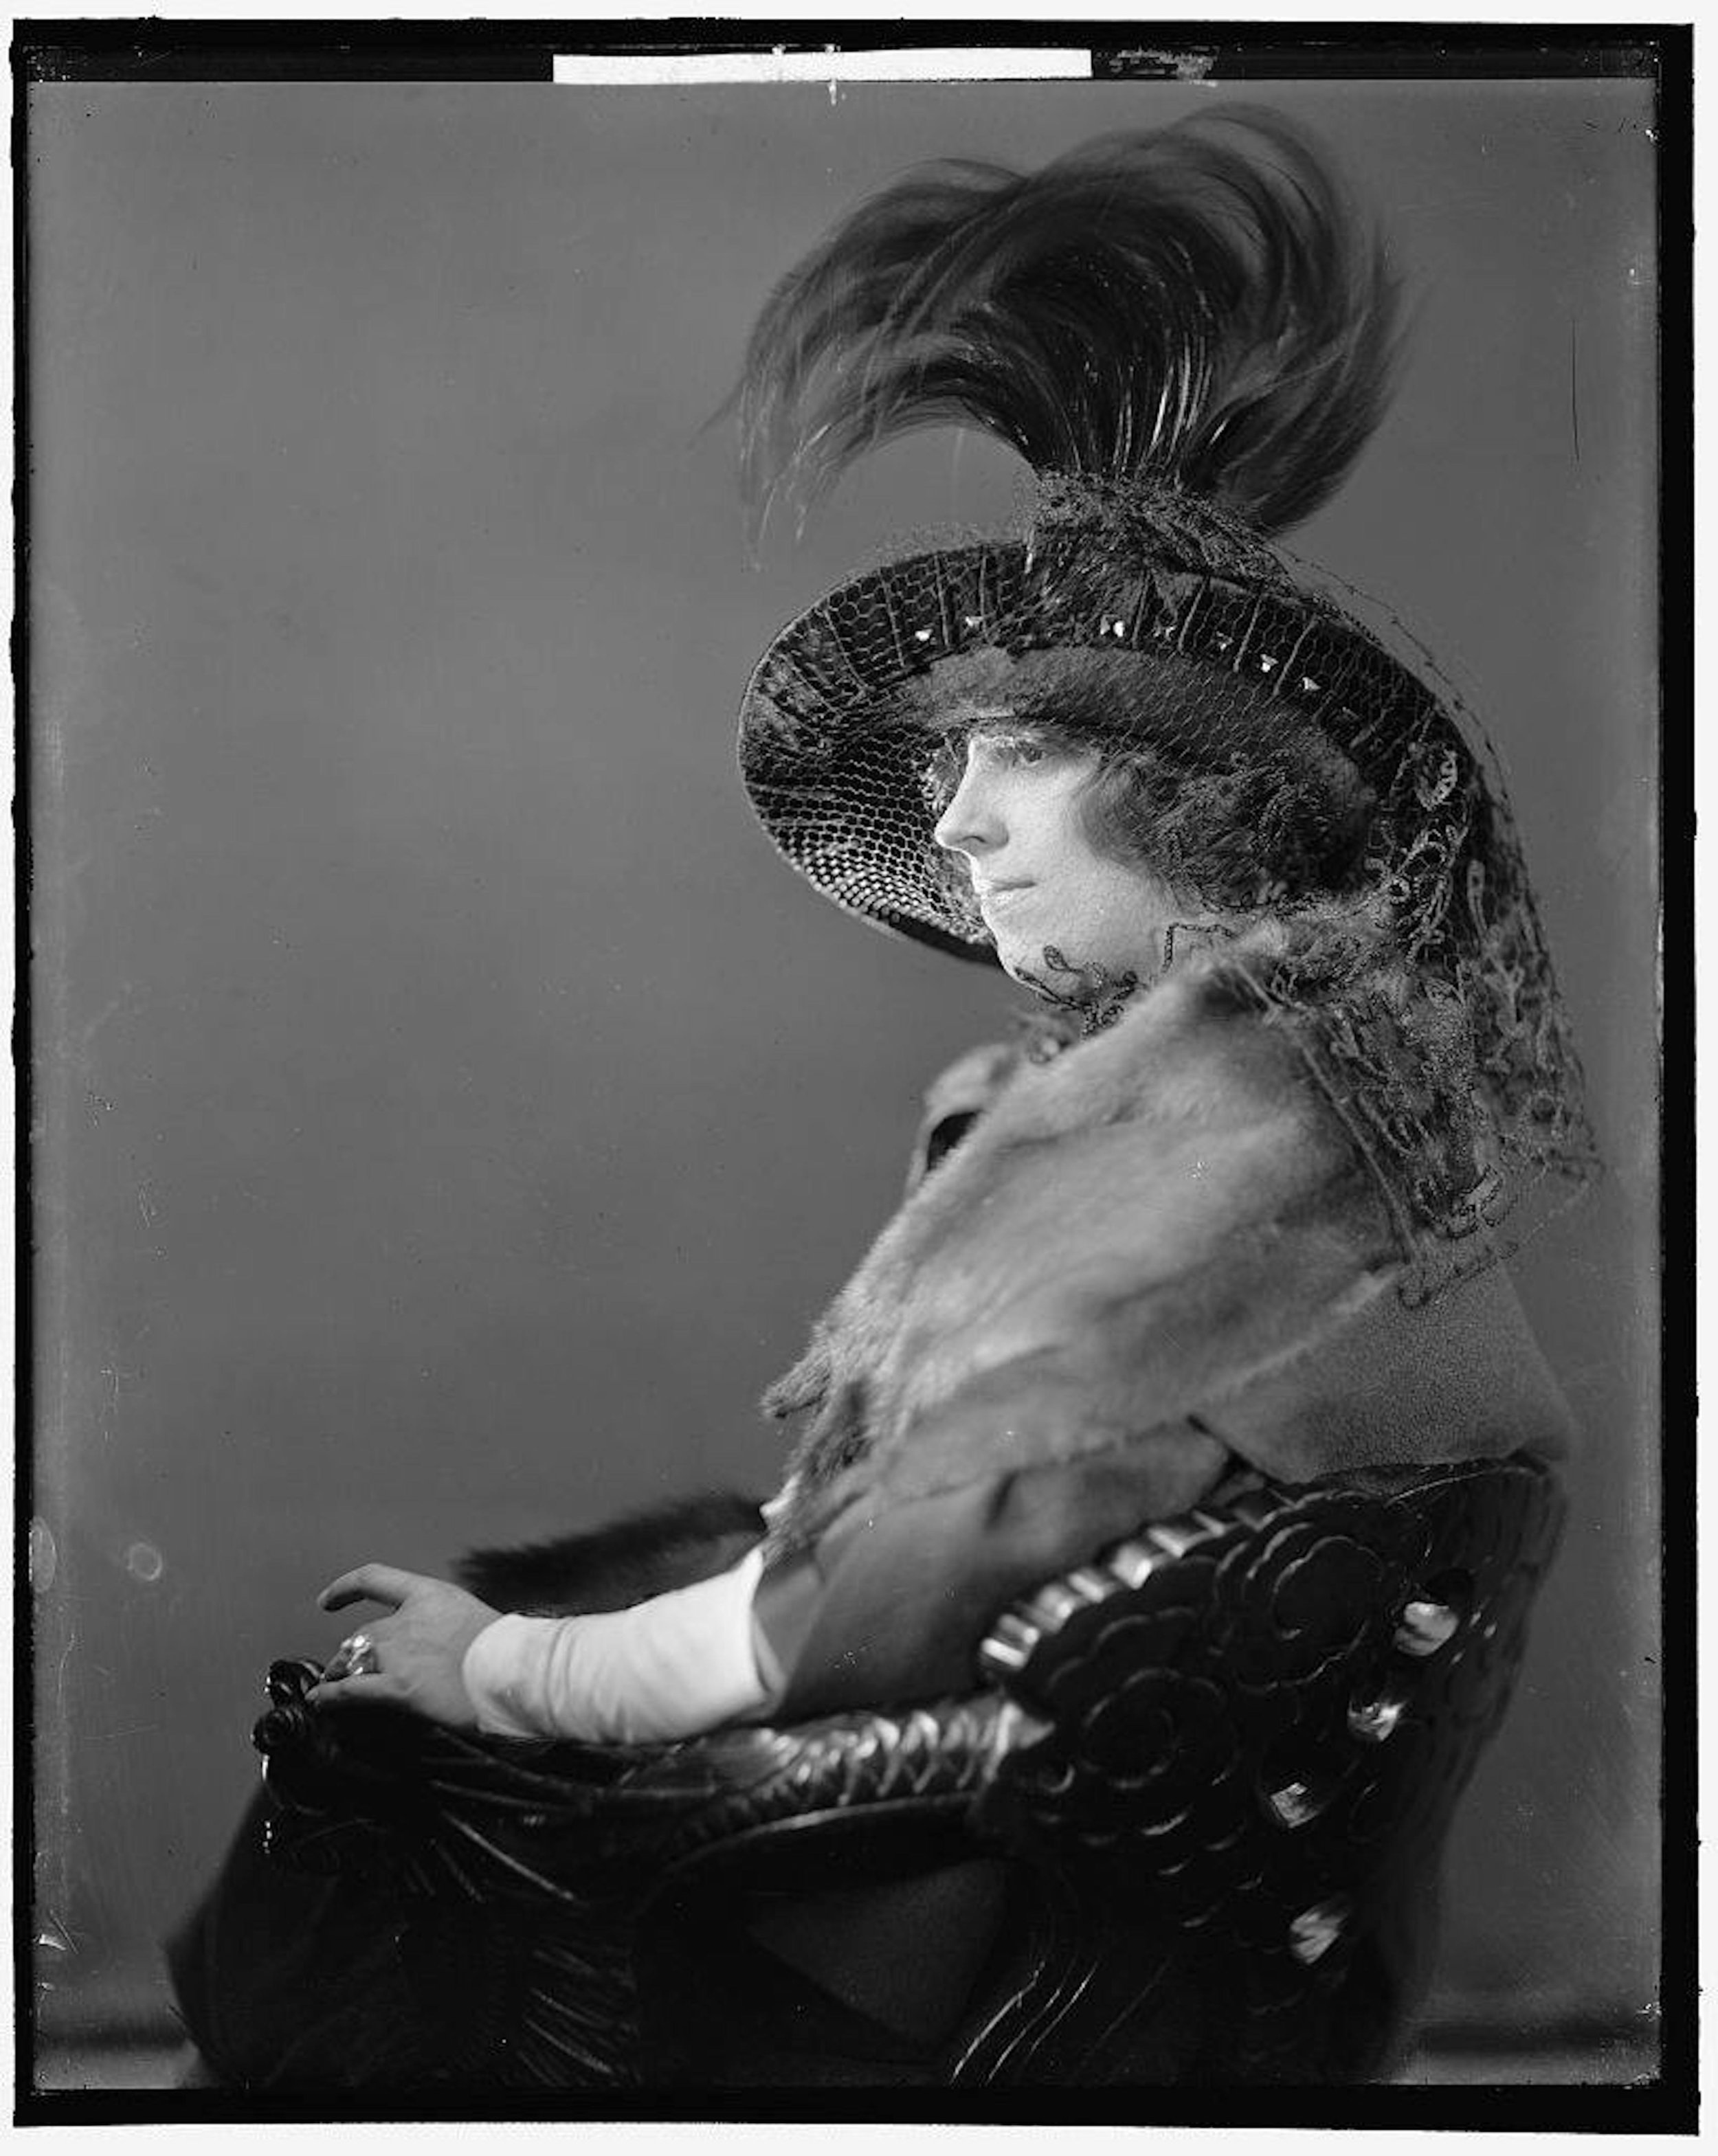 Imogene Remus sits for a formal portrait in her finest fur shawl and feathered hat. Her stunning diamond wedding ring is prominently displayed, which may indicate that this photo was taken shortly after she and George were married in Newport, Kentucky, on June 25, 1920.